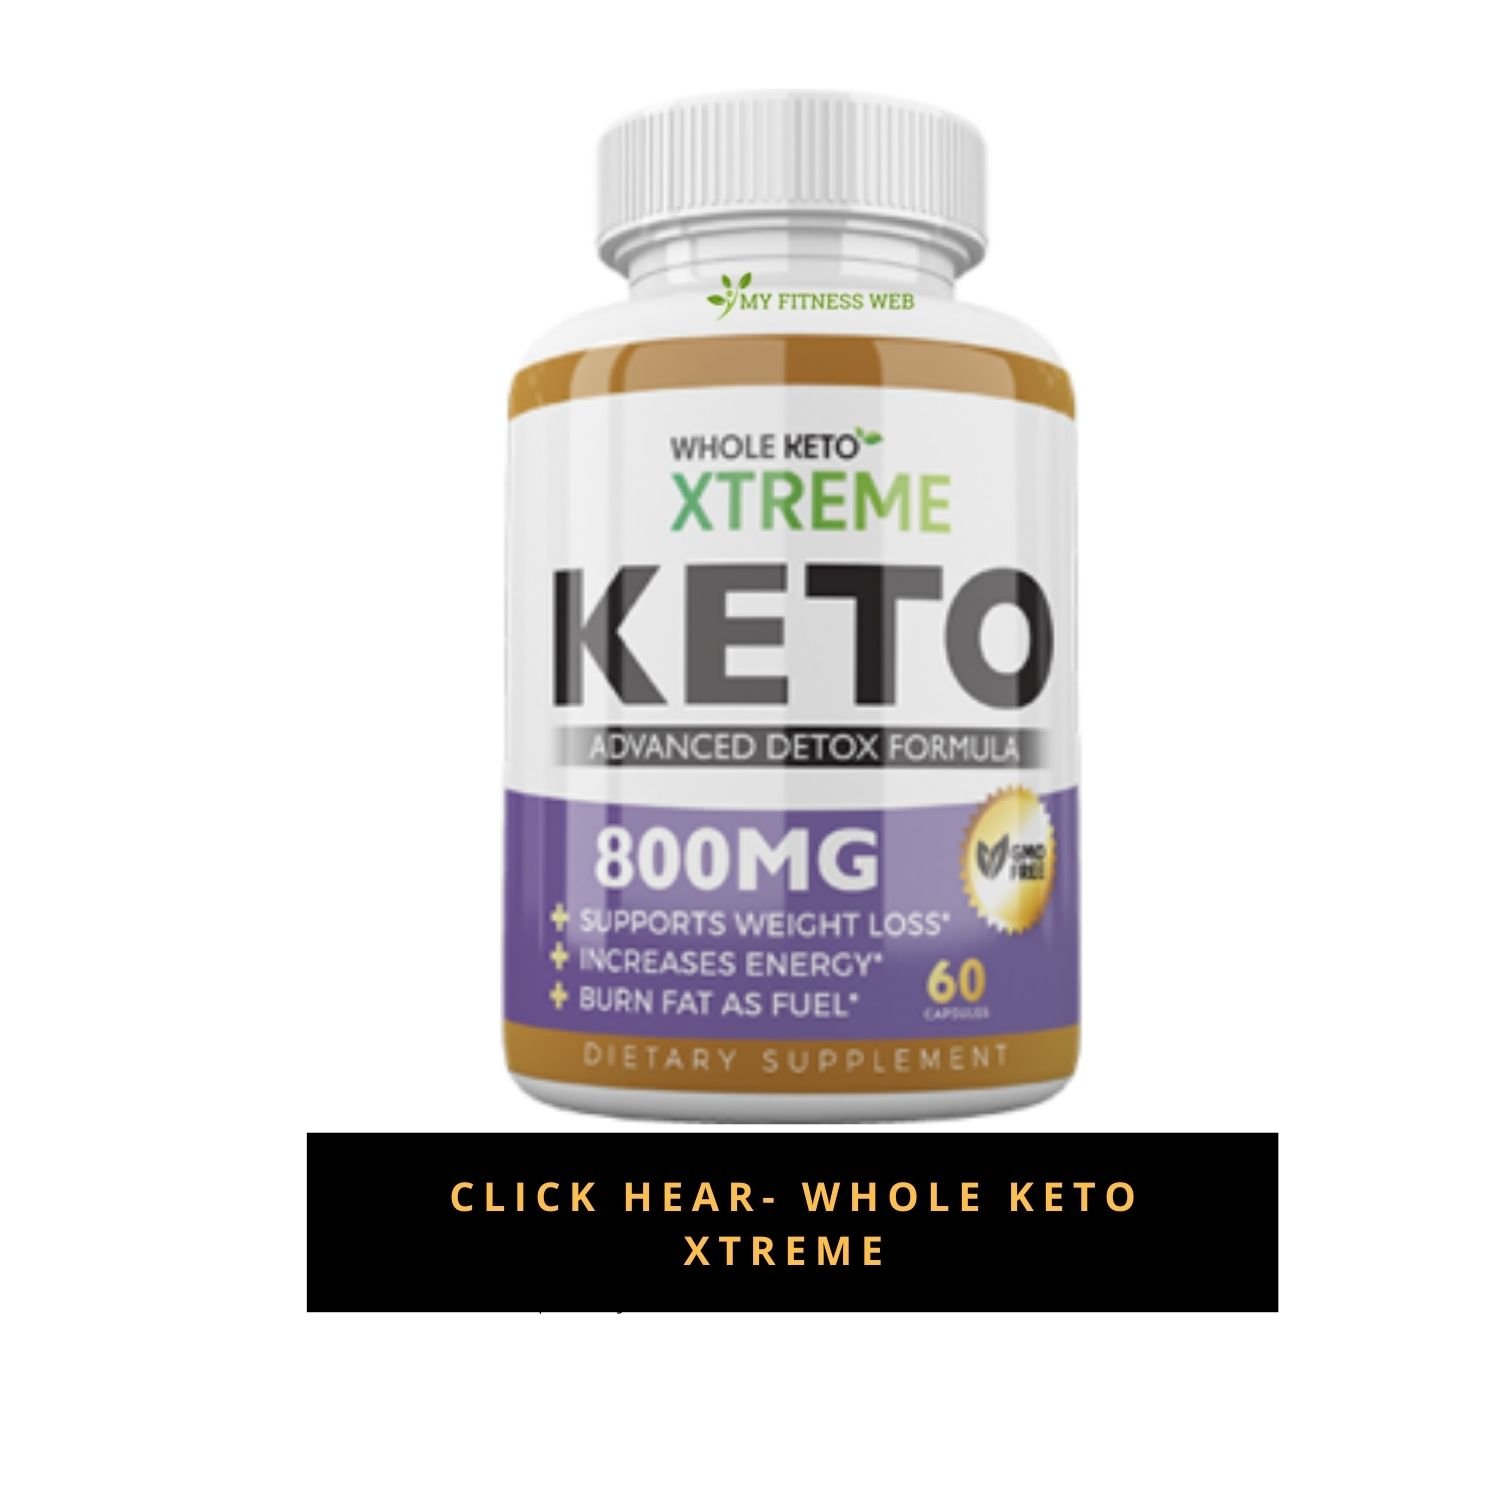 whole keto xtreme Buy